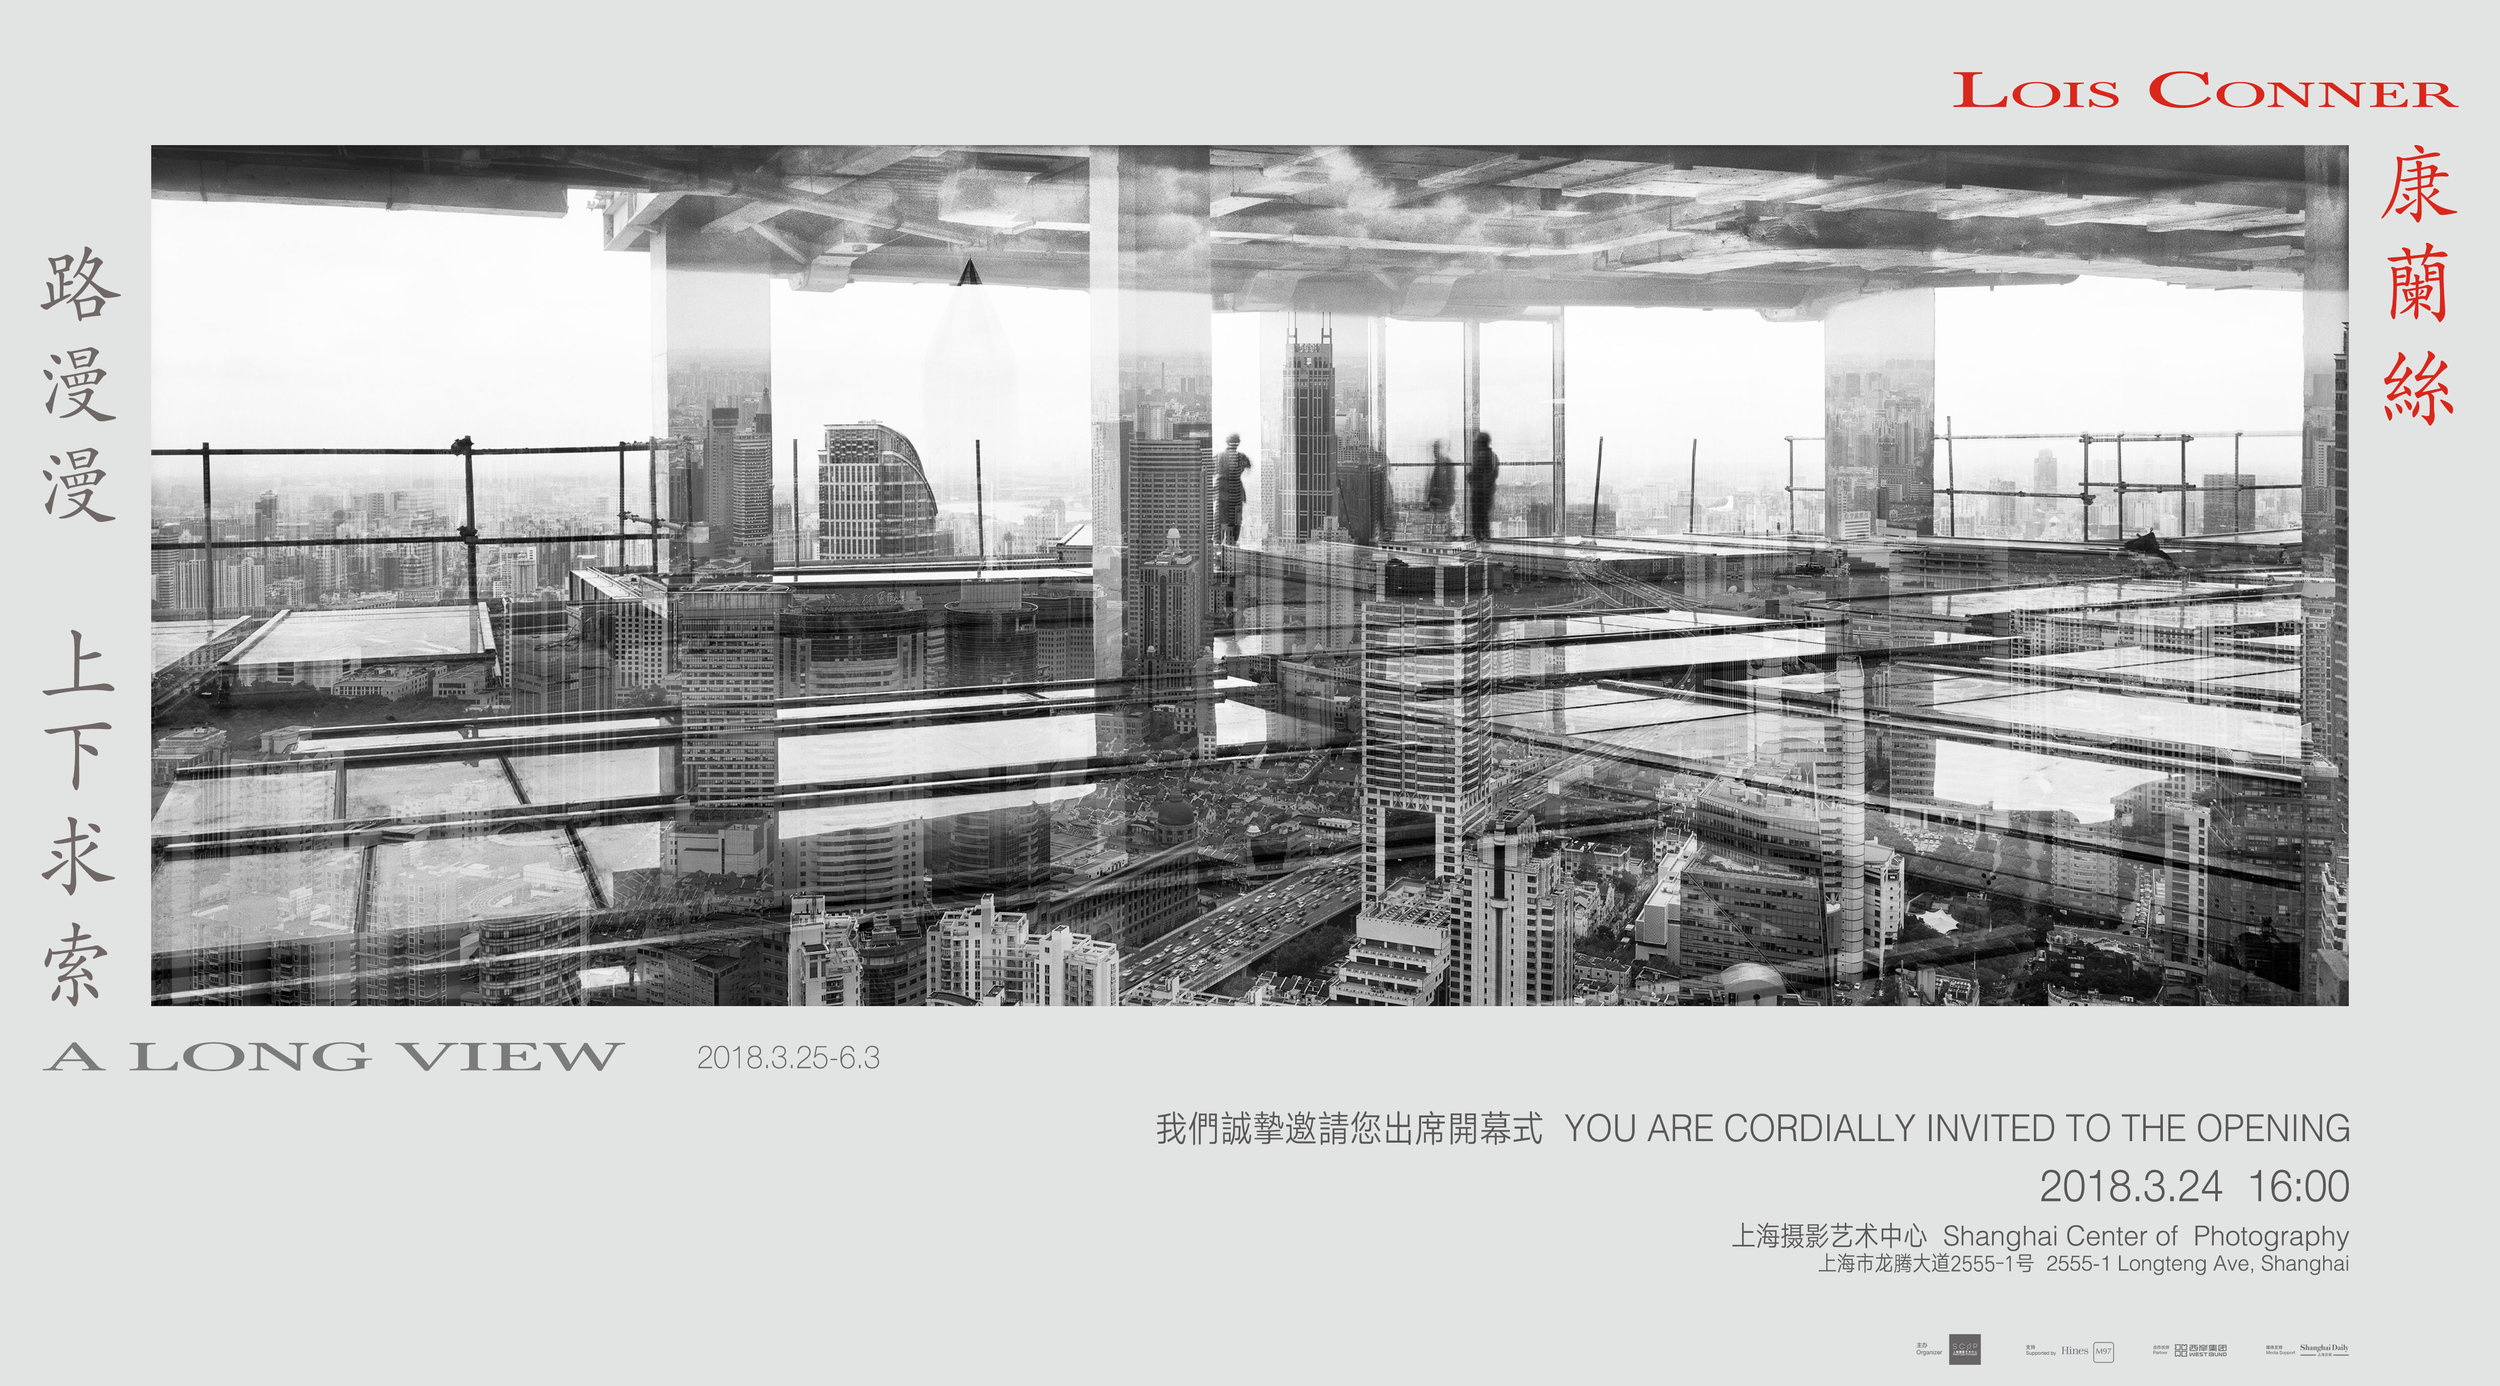 The Long View: Shanghai Center of Photography